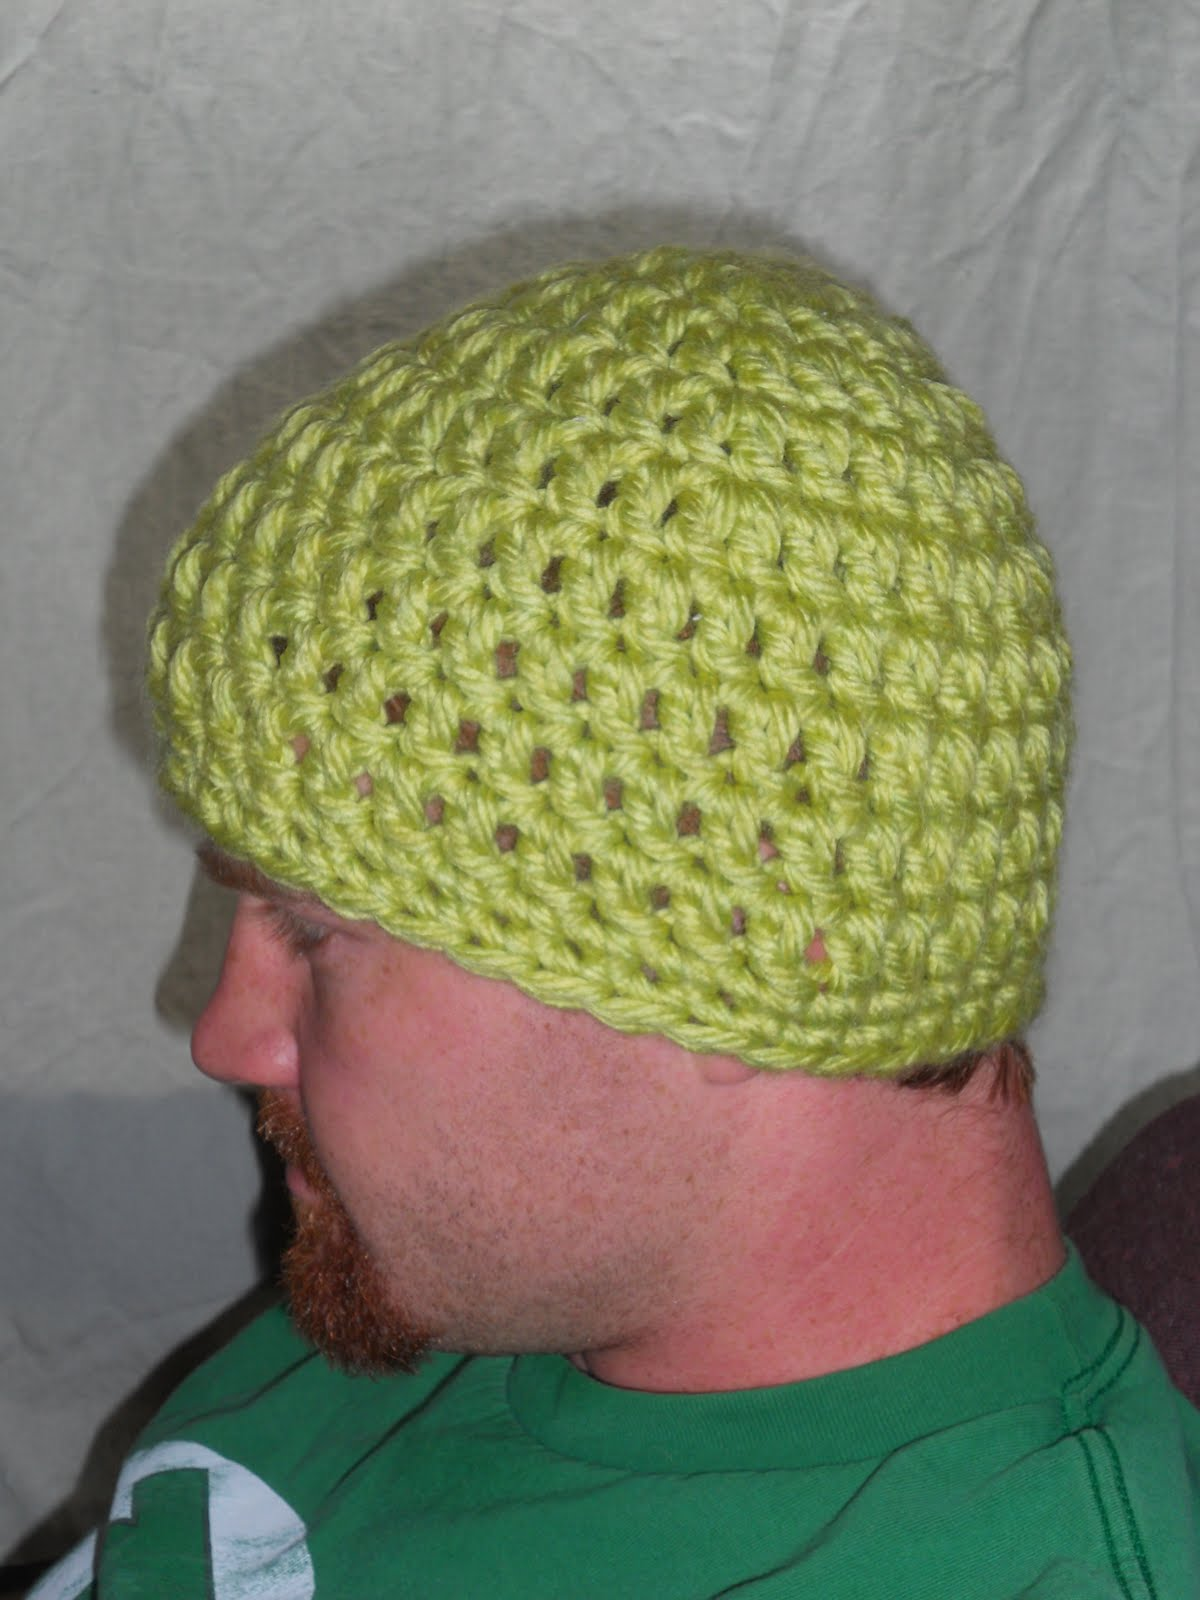 Crochet Hat Pattern Super Bulky Yarn : Crafty Woman Creations: Free Basic Super Bulky Beanie Pattern